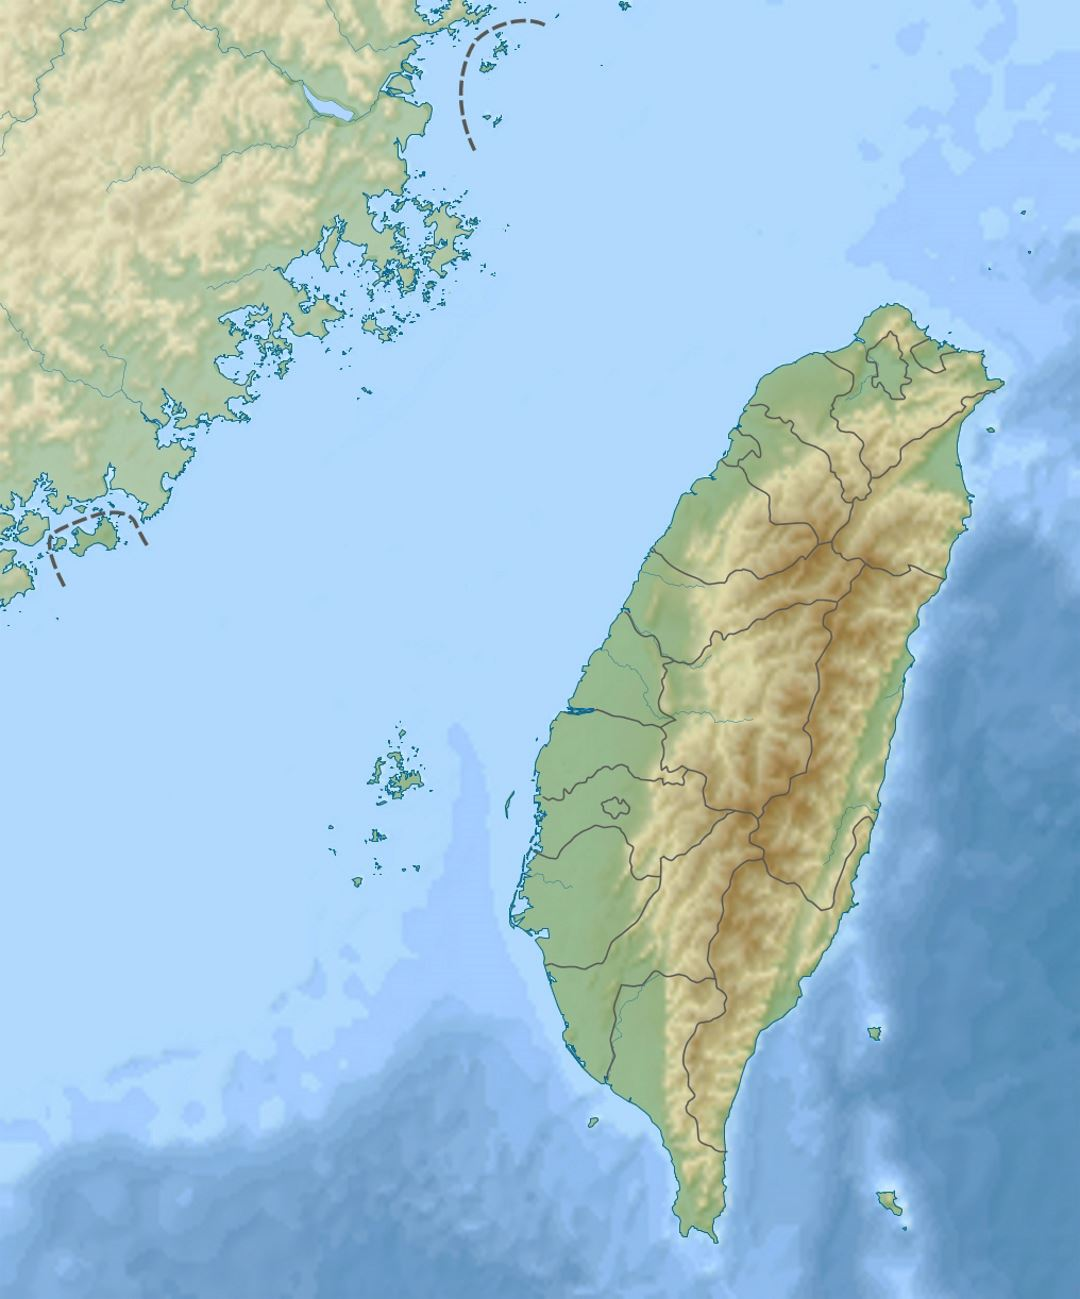 Detailed relief map of Taiwan